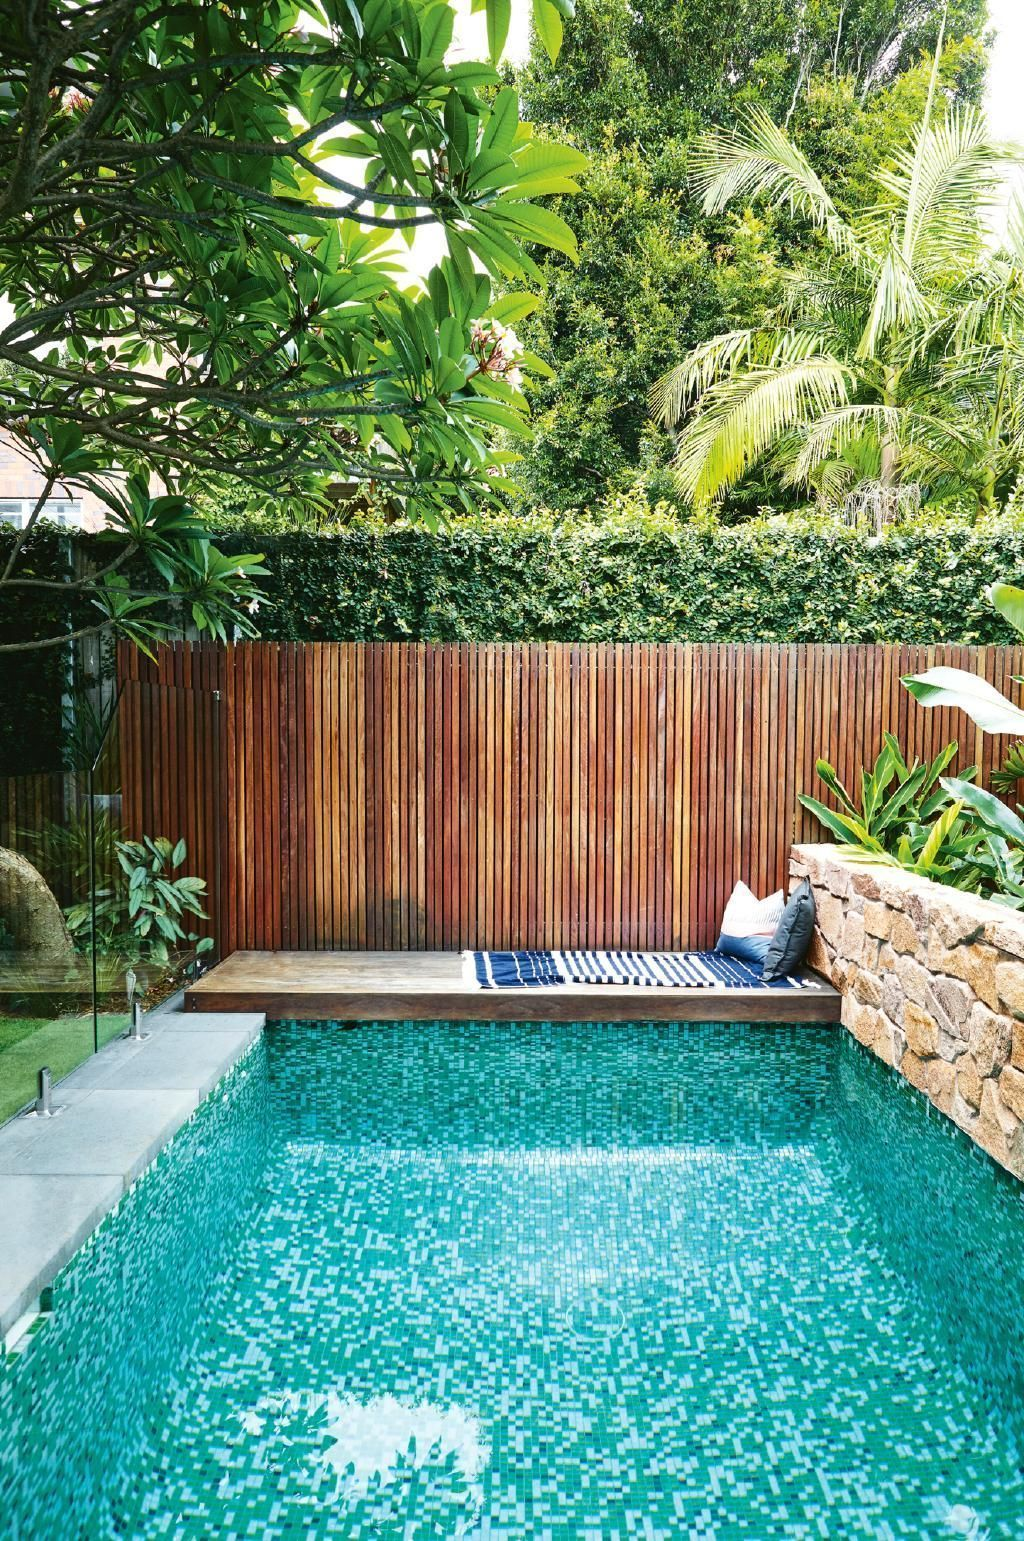 40 fabulous swimming pool design ideas for your home backyard wohomedecors info 40 fabulous swimming pool design ideas for your home backyard